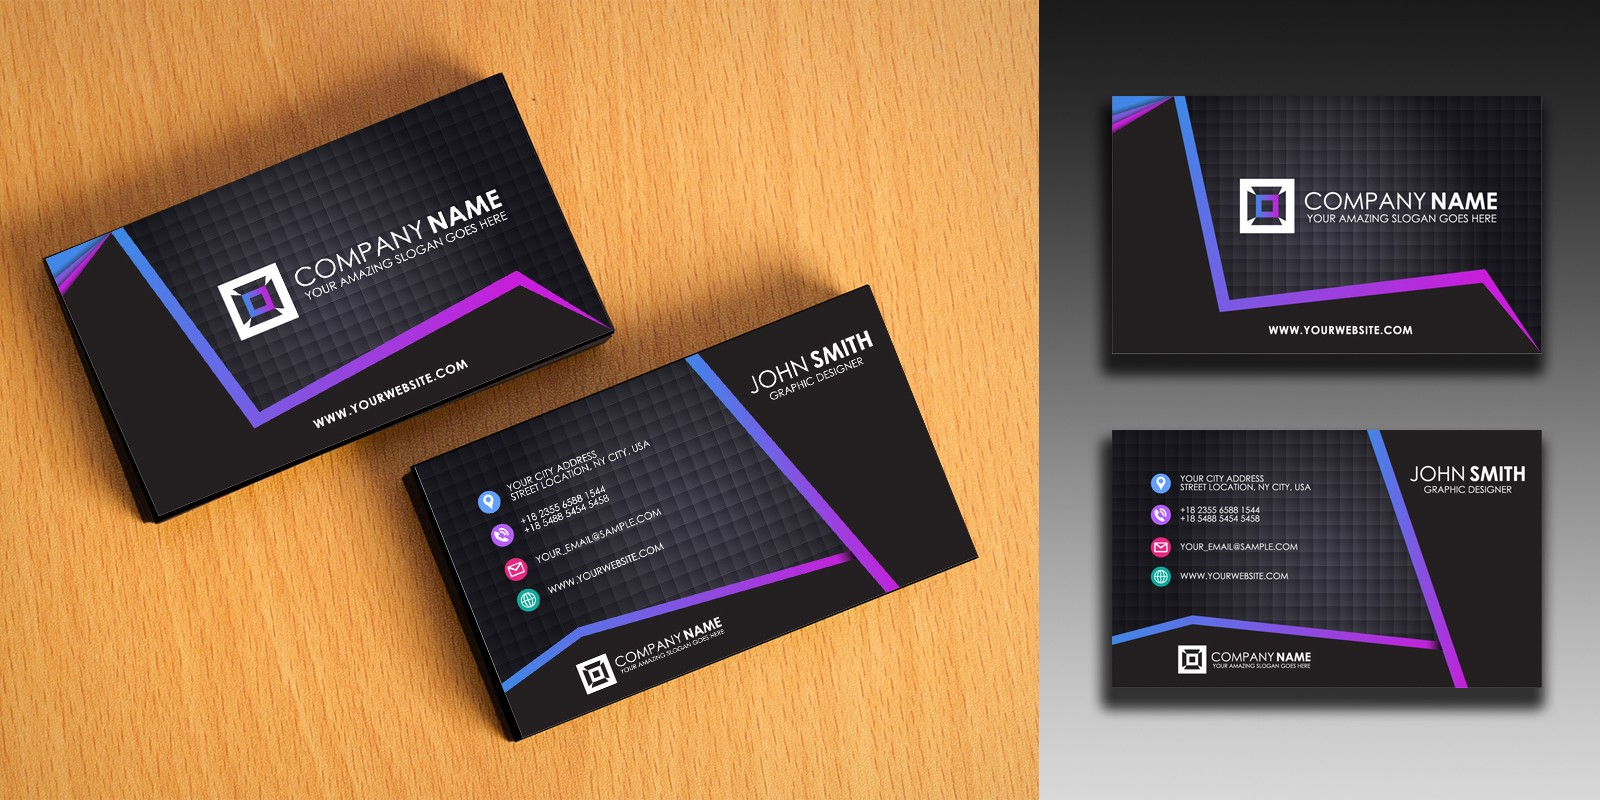 Clean and simple business card template business card templates clean and simple business card template accmission